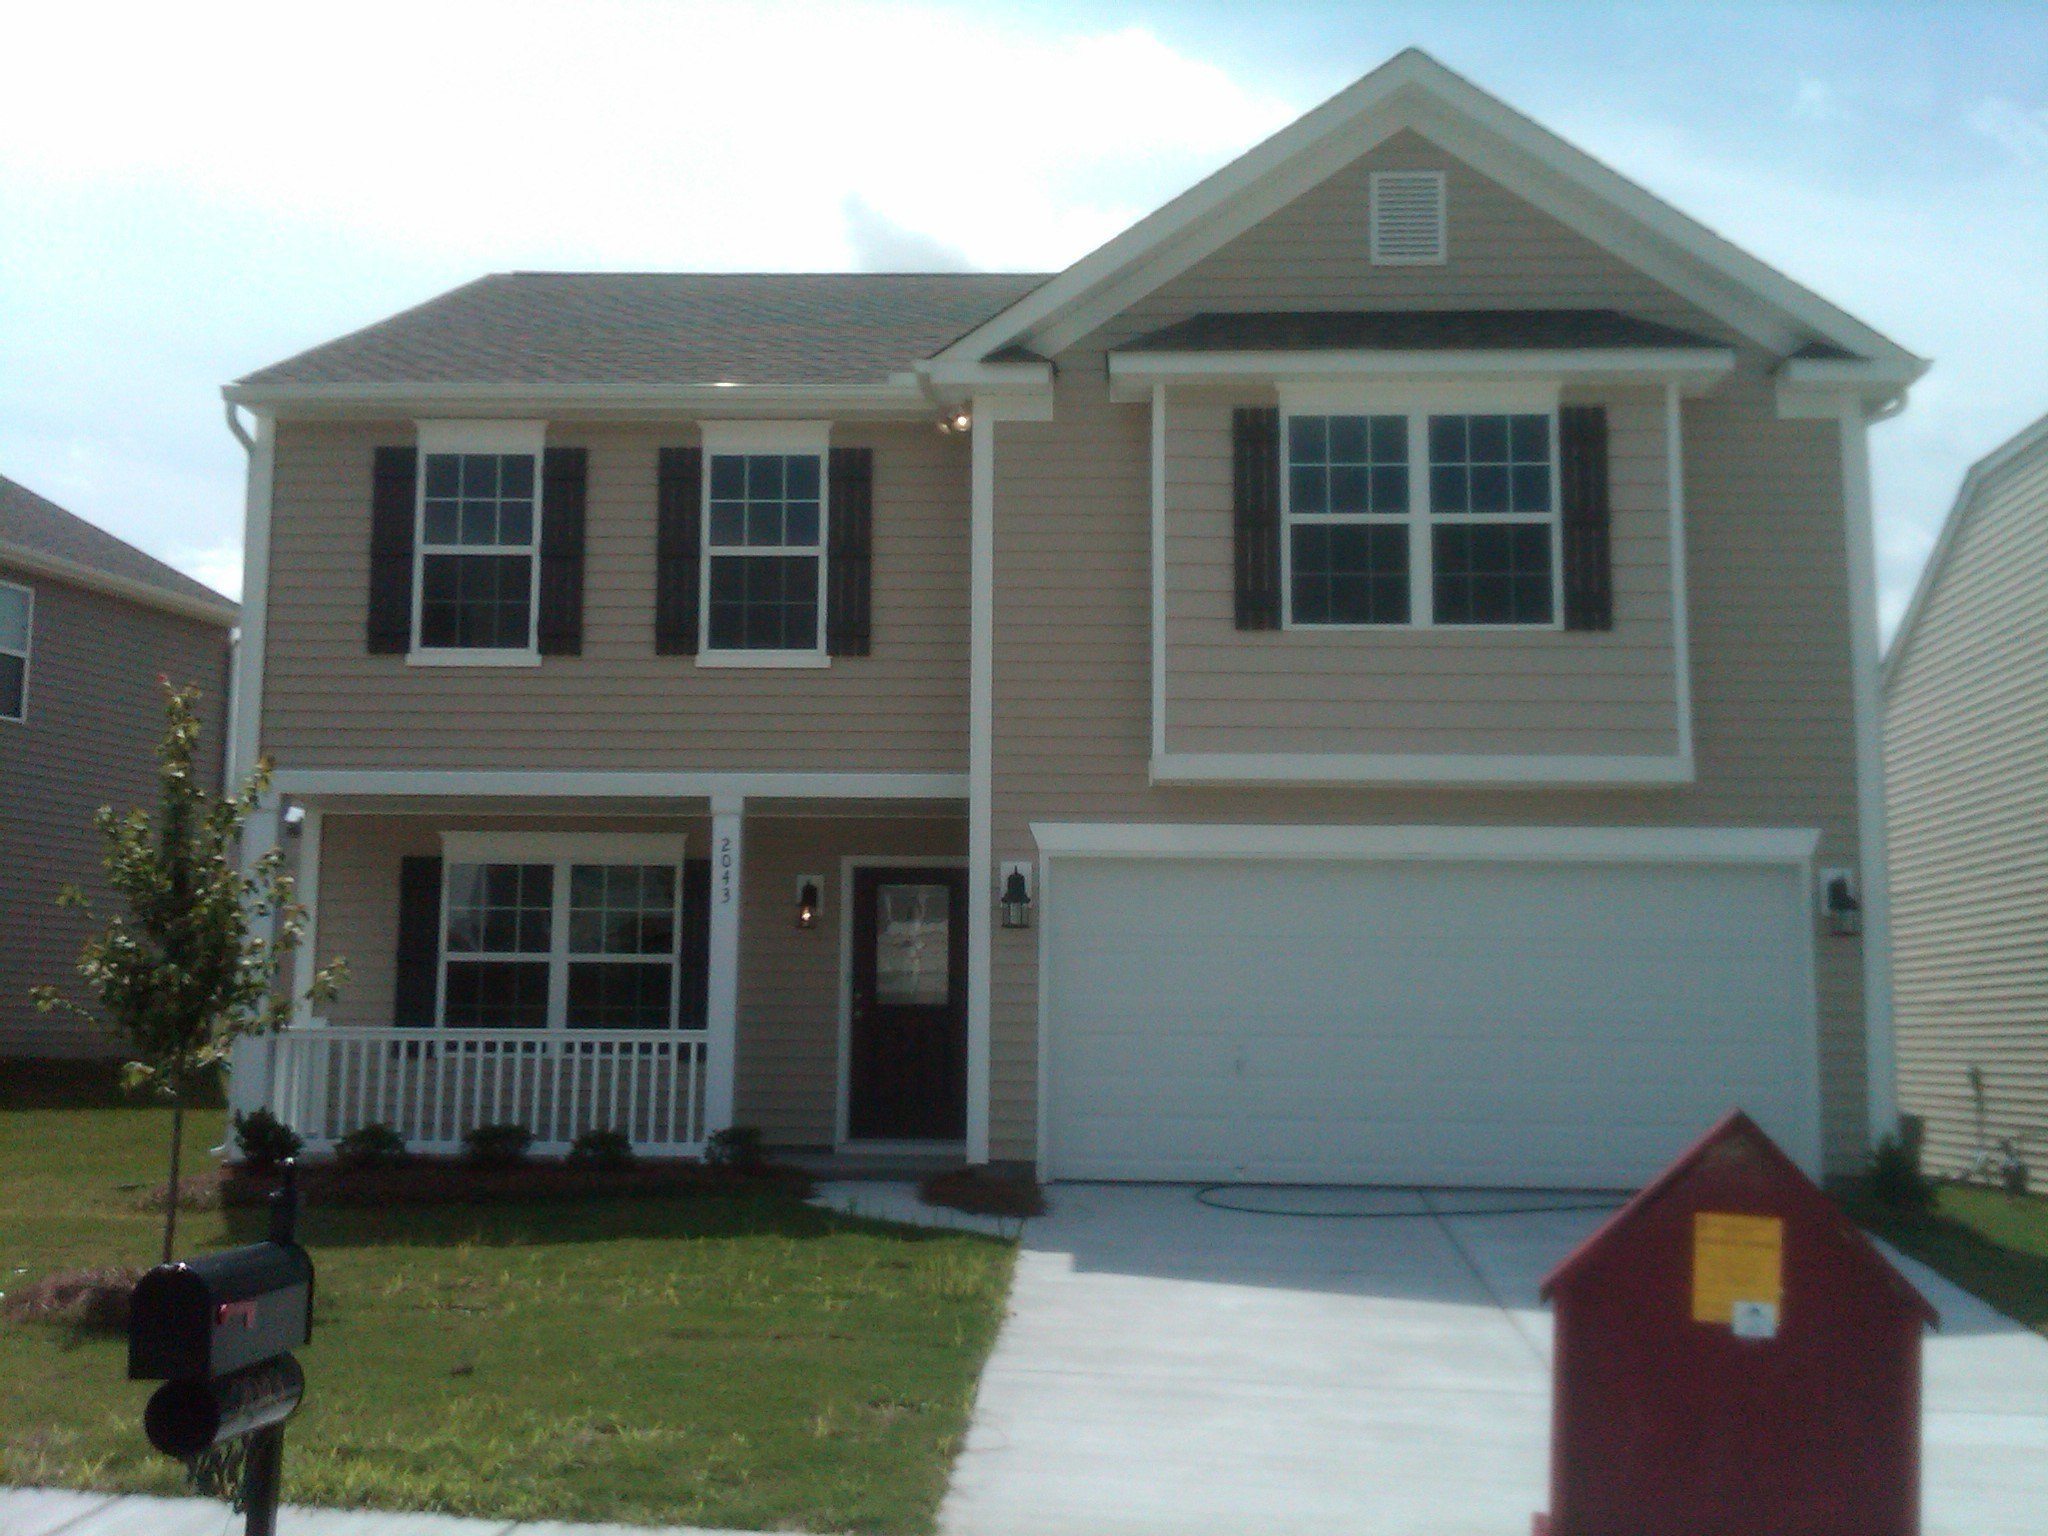 Best For Rent 4 Bedroom Houses Charlotte Mitula Homes With Pictures Original 1024 x 768